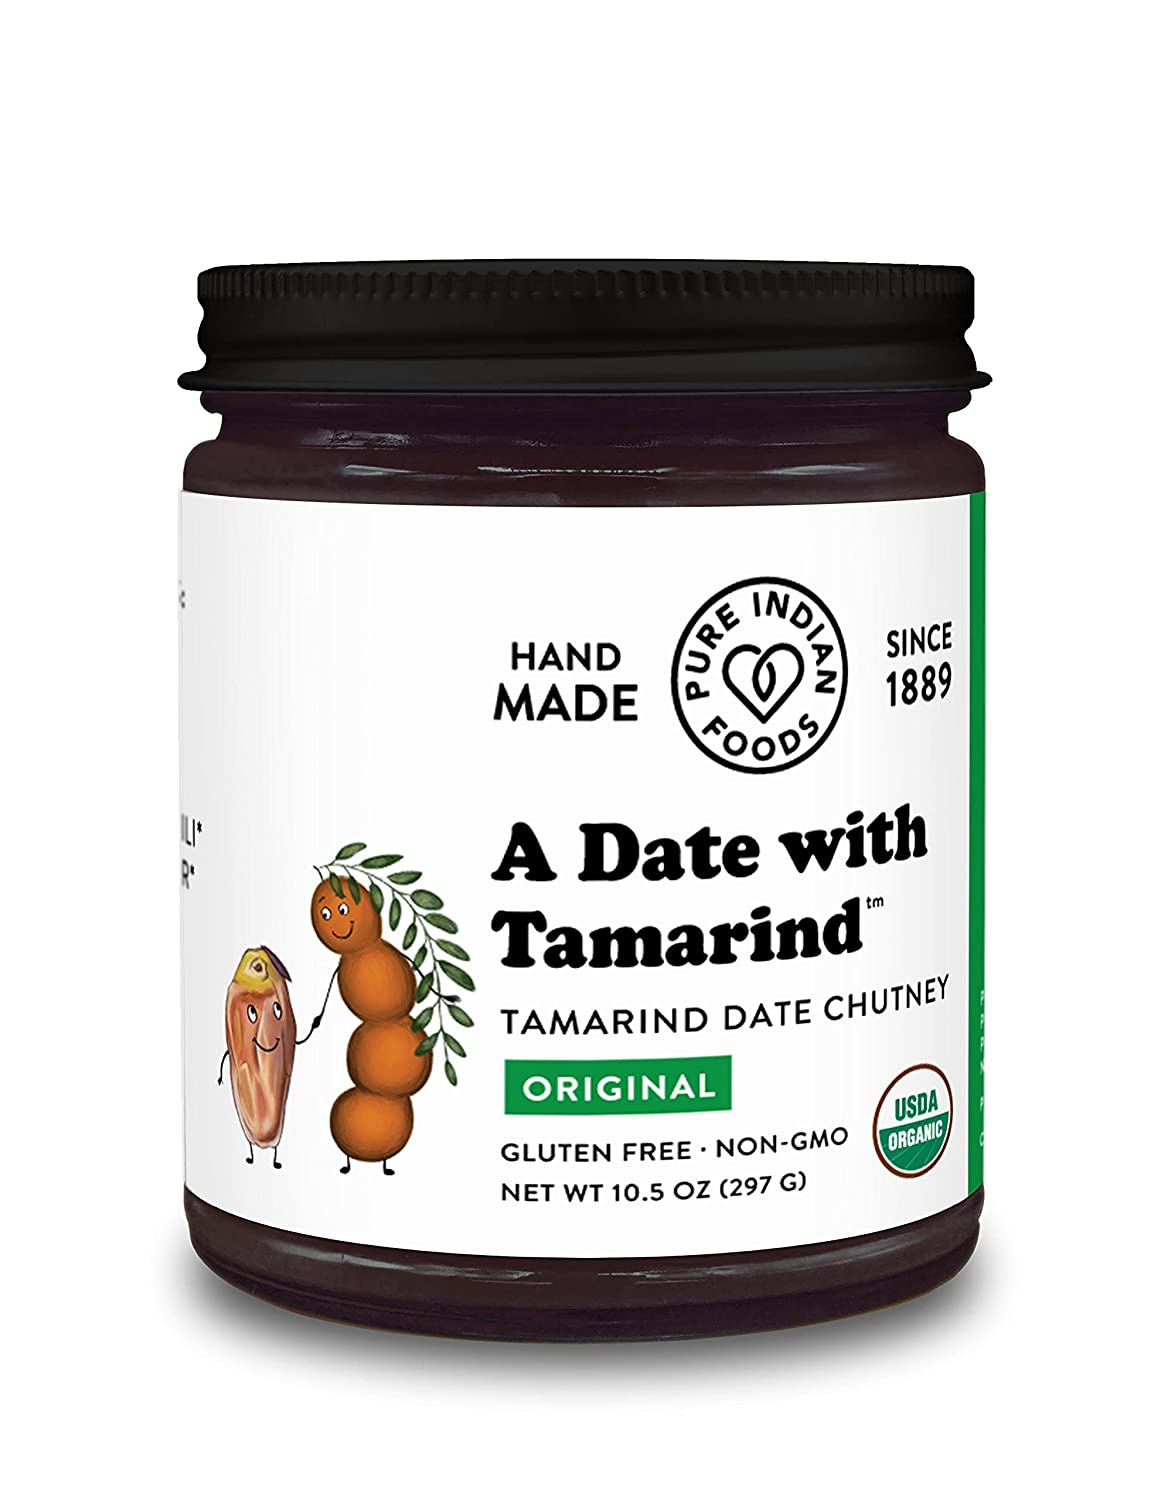 Organic Tamarind Date Chutney Condiment (Indian Preserve) - A Date with Tamarind, Non-GMO, No Sugar Added, Sweet and Sour/Tart Flavor, Glass Jar